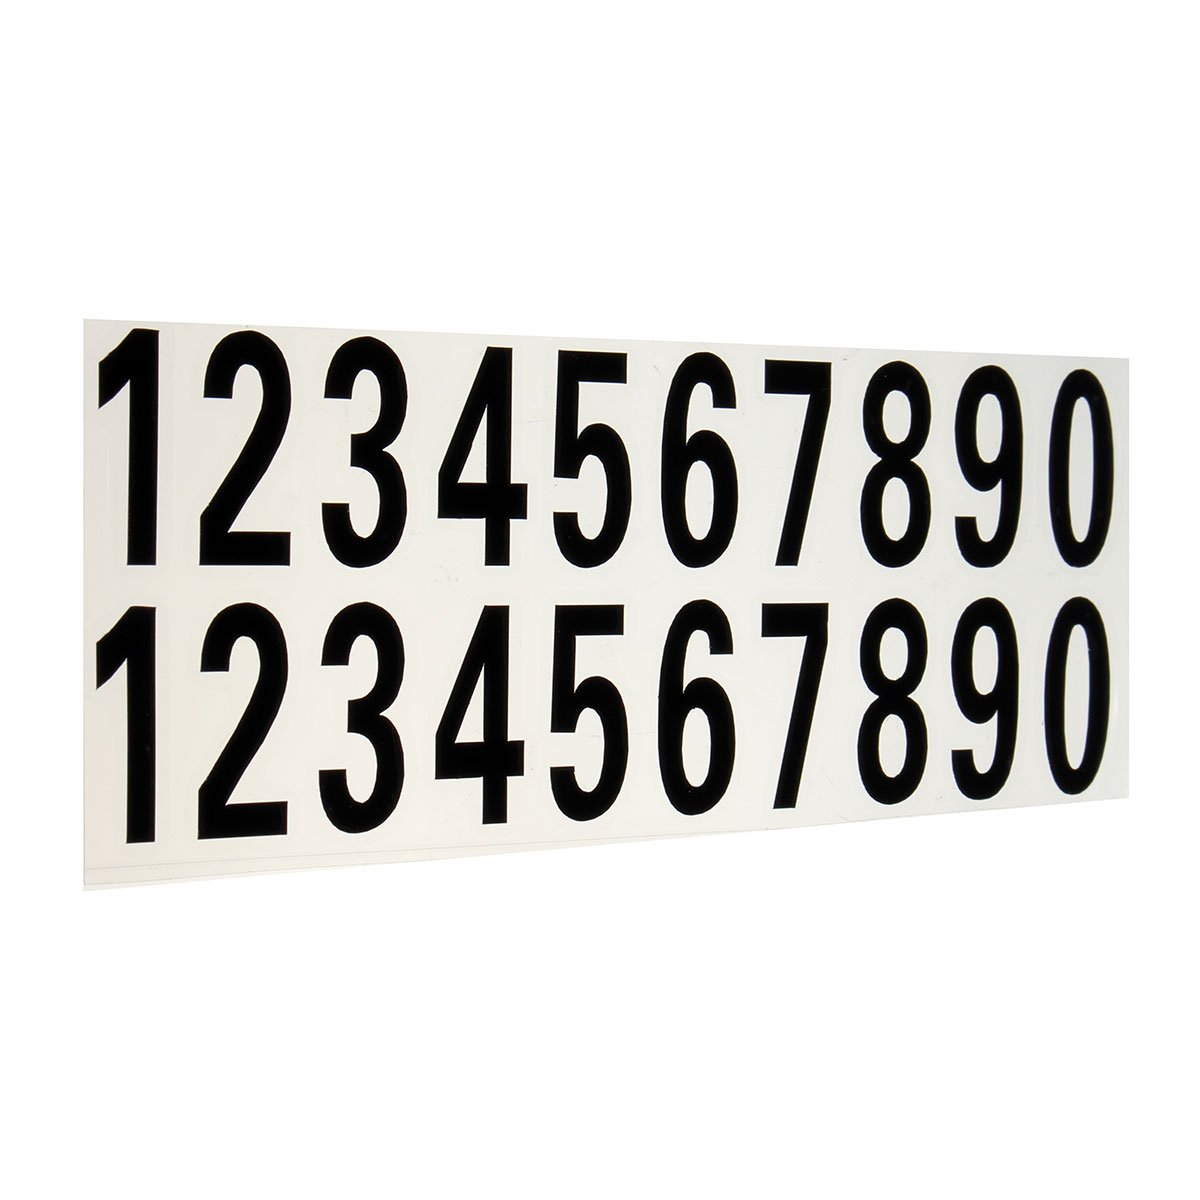 Exterior Accessories - Ctom Mailbox Numbers Reflective - Number Reflective Sticker Car Vinyl Decal Street Address Mailbox Number Stickers White Black - Mailbox Letters And Numbers Reflective - 1PCs